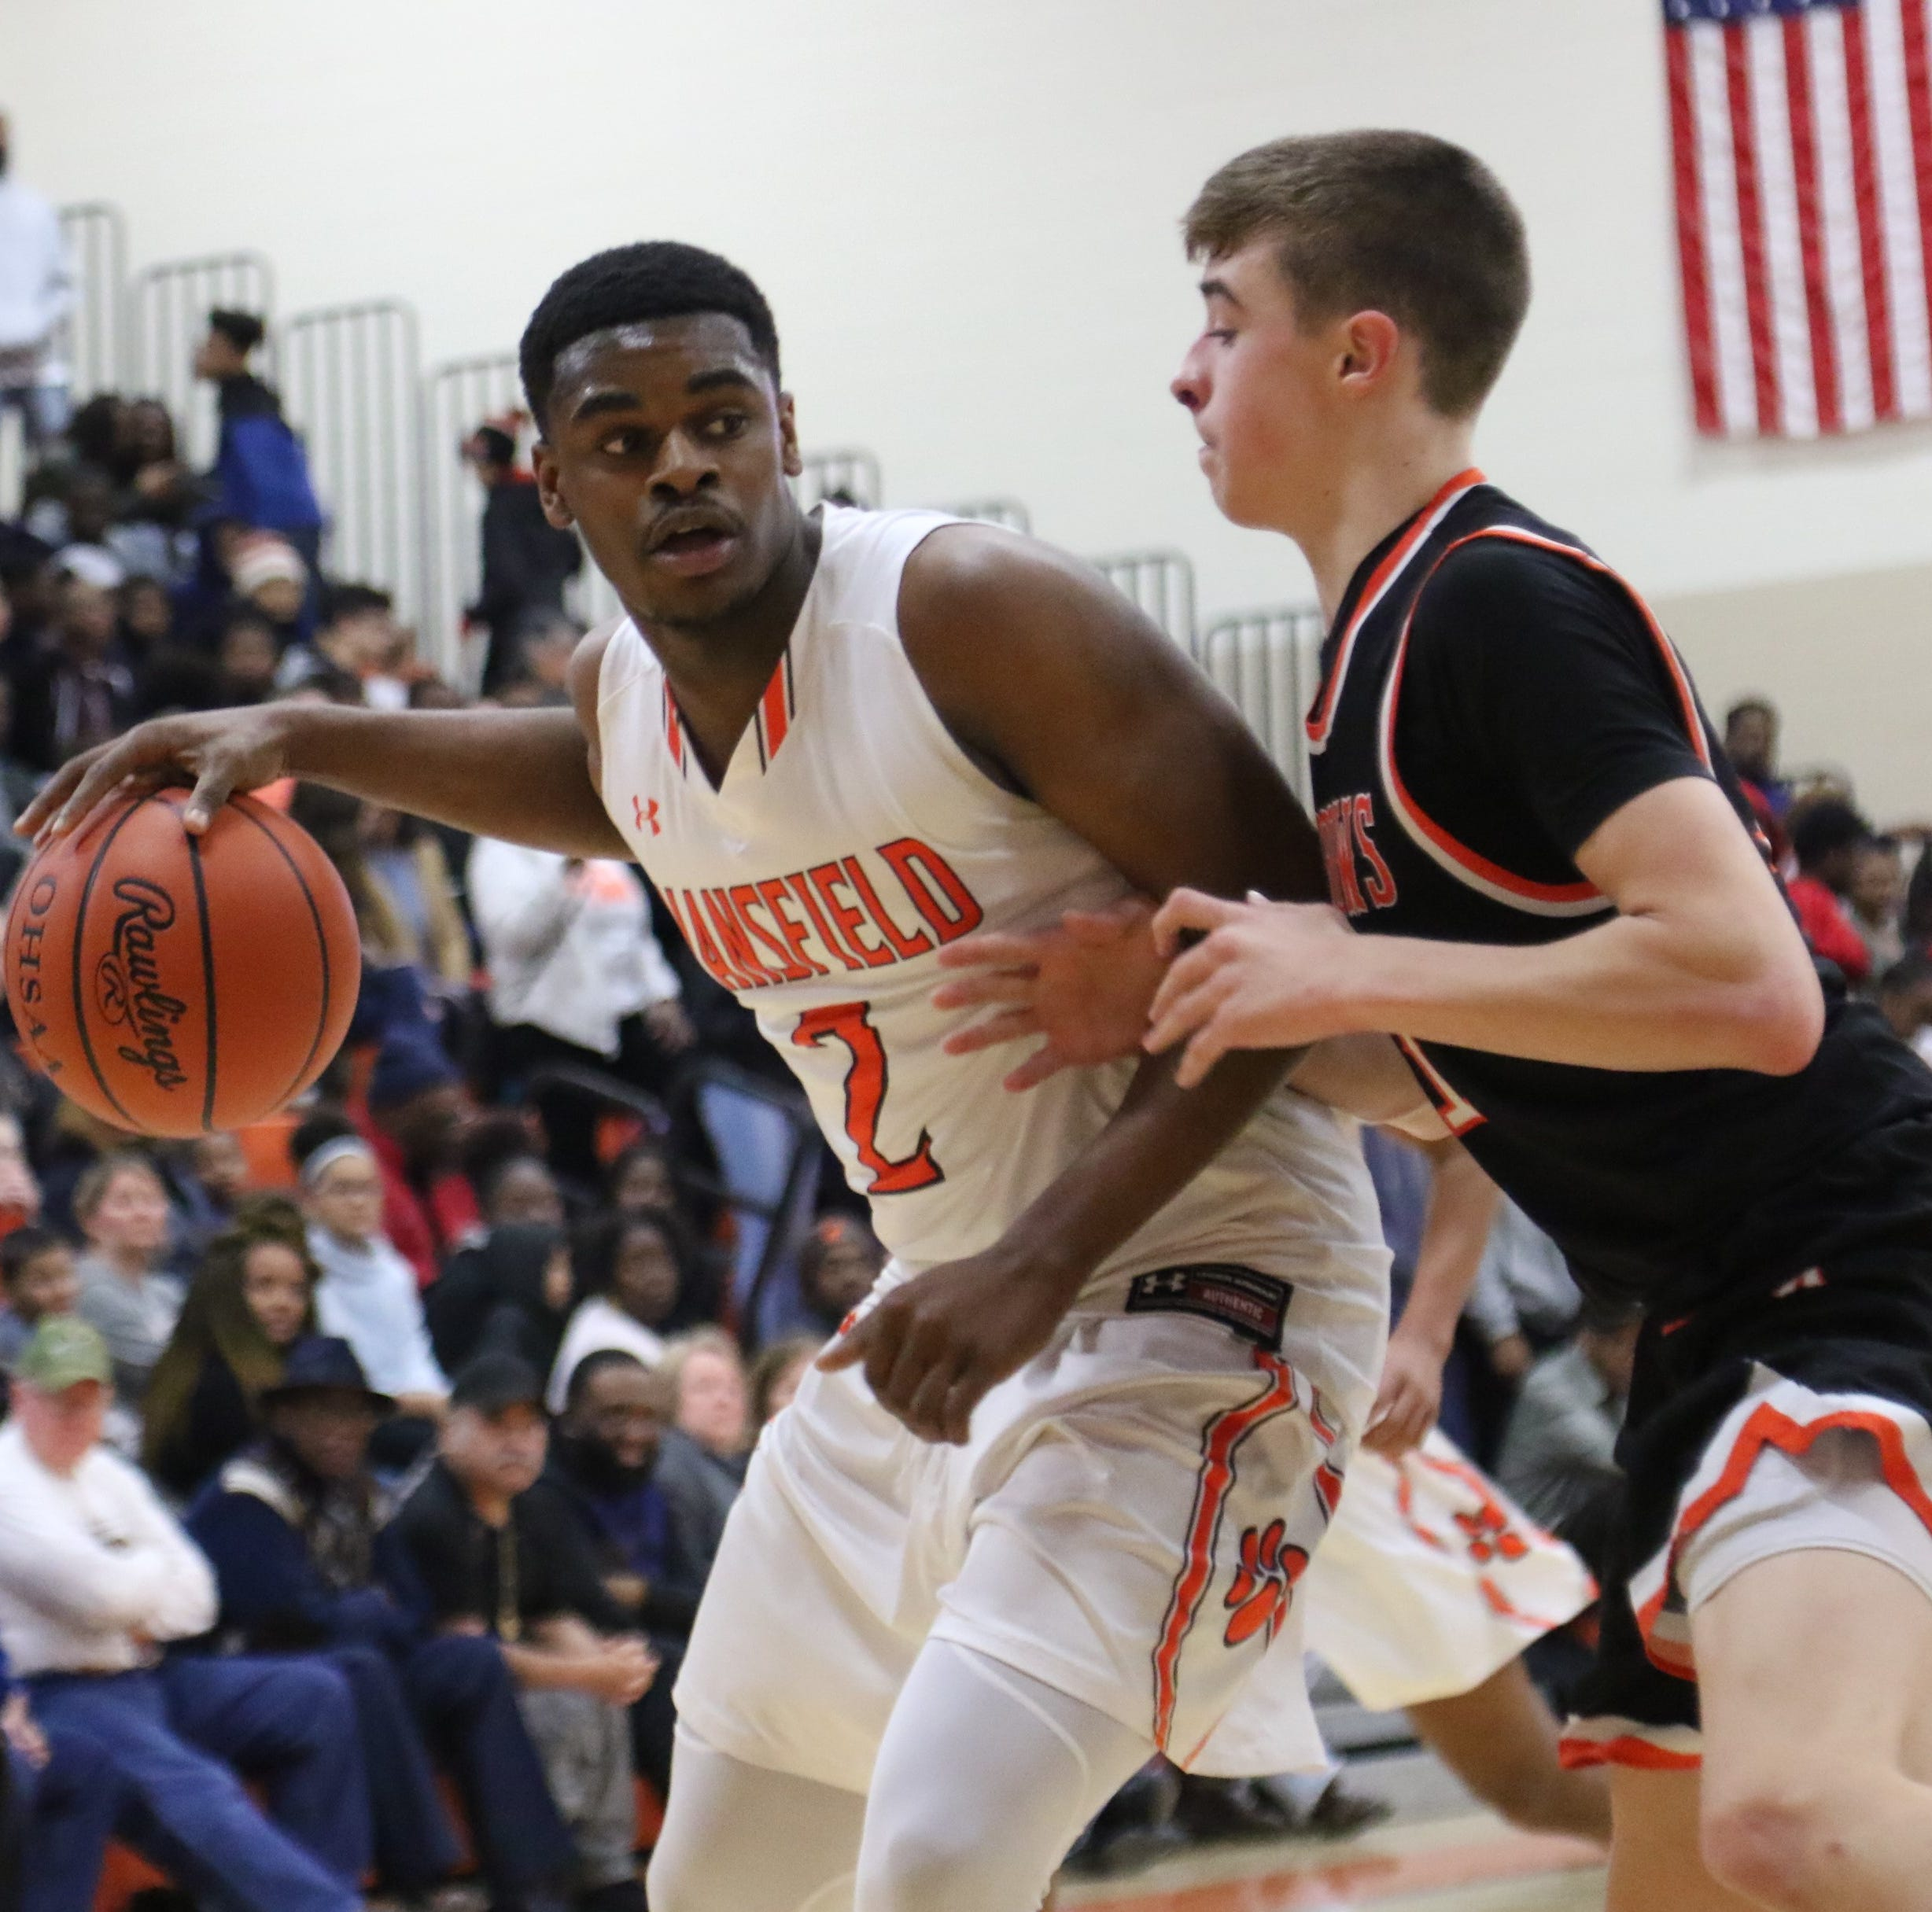 Mansfield Senior Tygers clinch Ohio Cardinal Conference title with win over Ashland Arrows